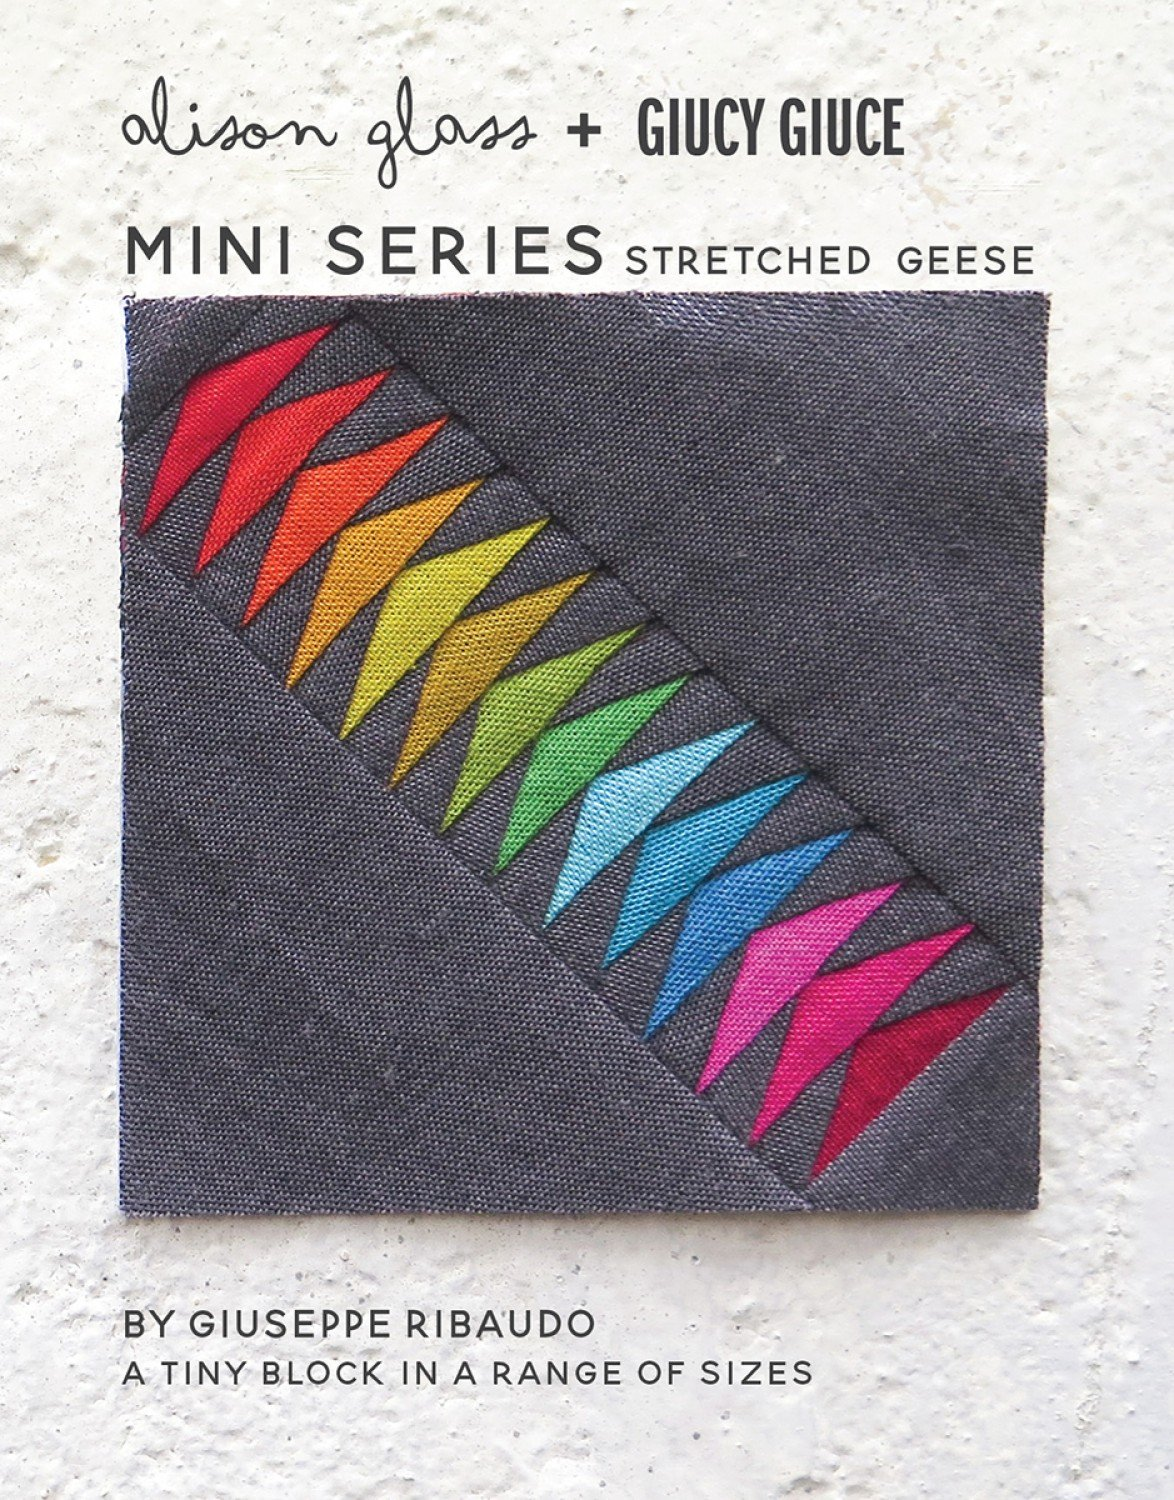 Giucy Giuce - Mini Series Stretched Geese